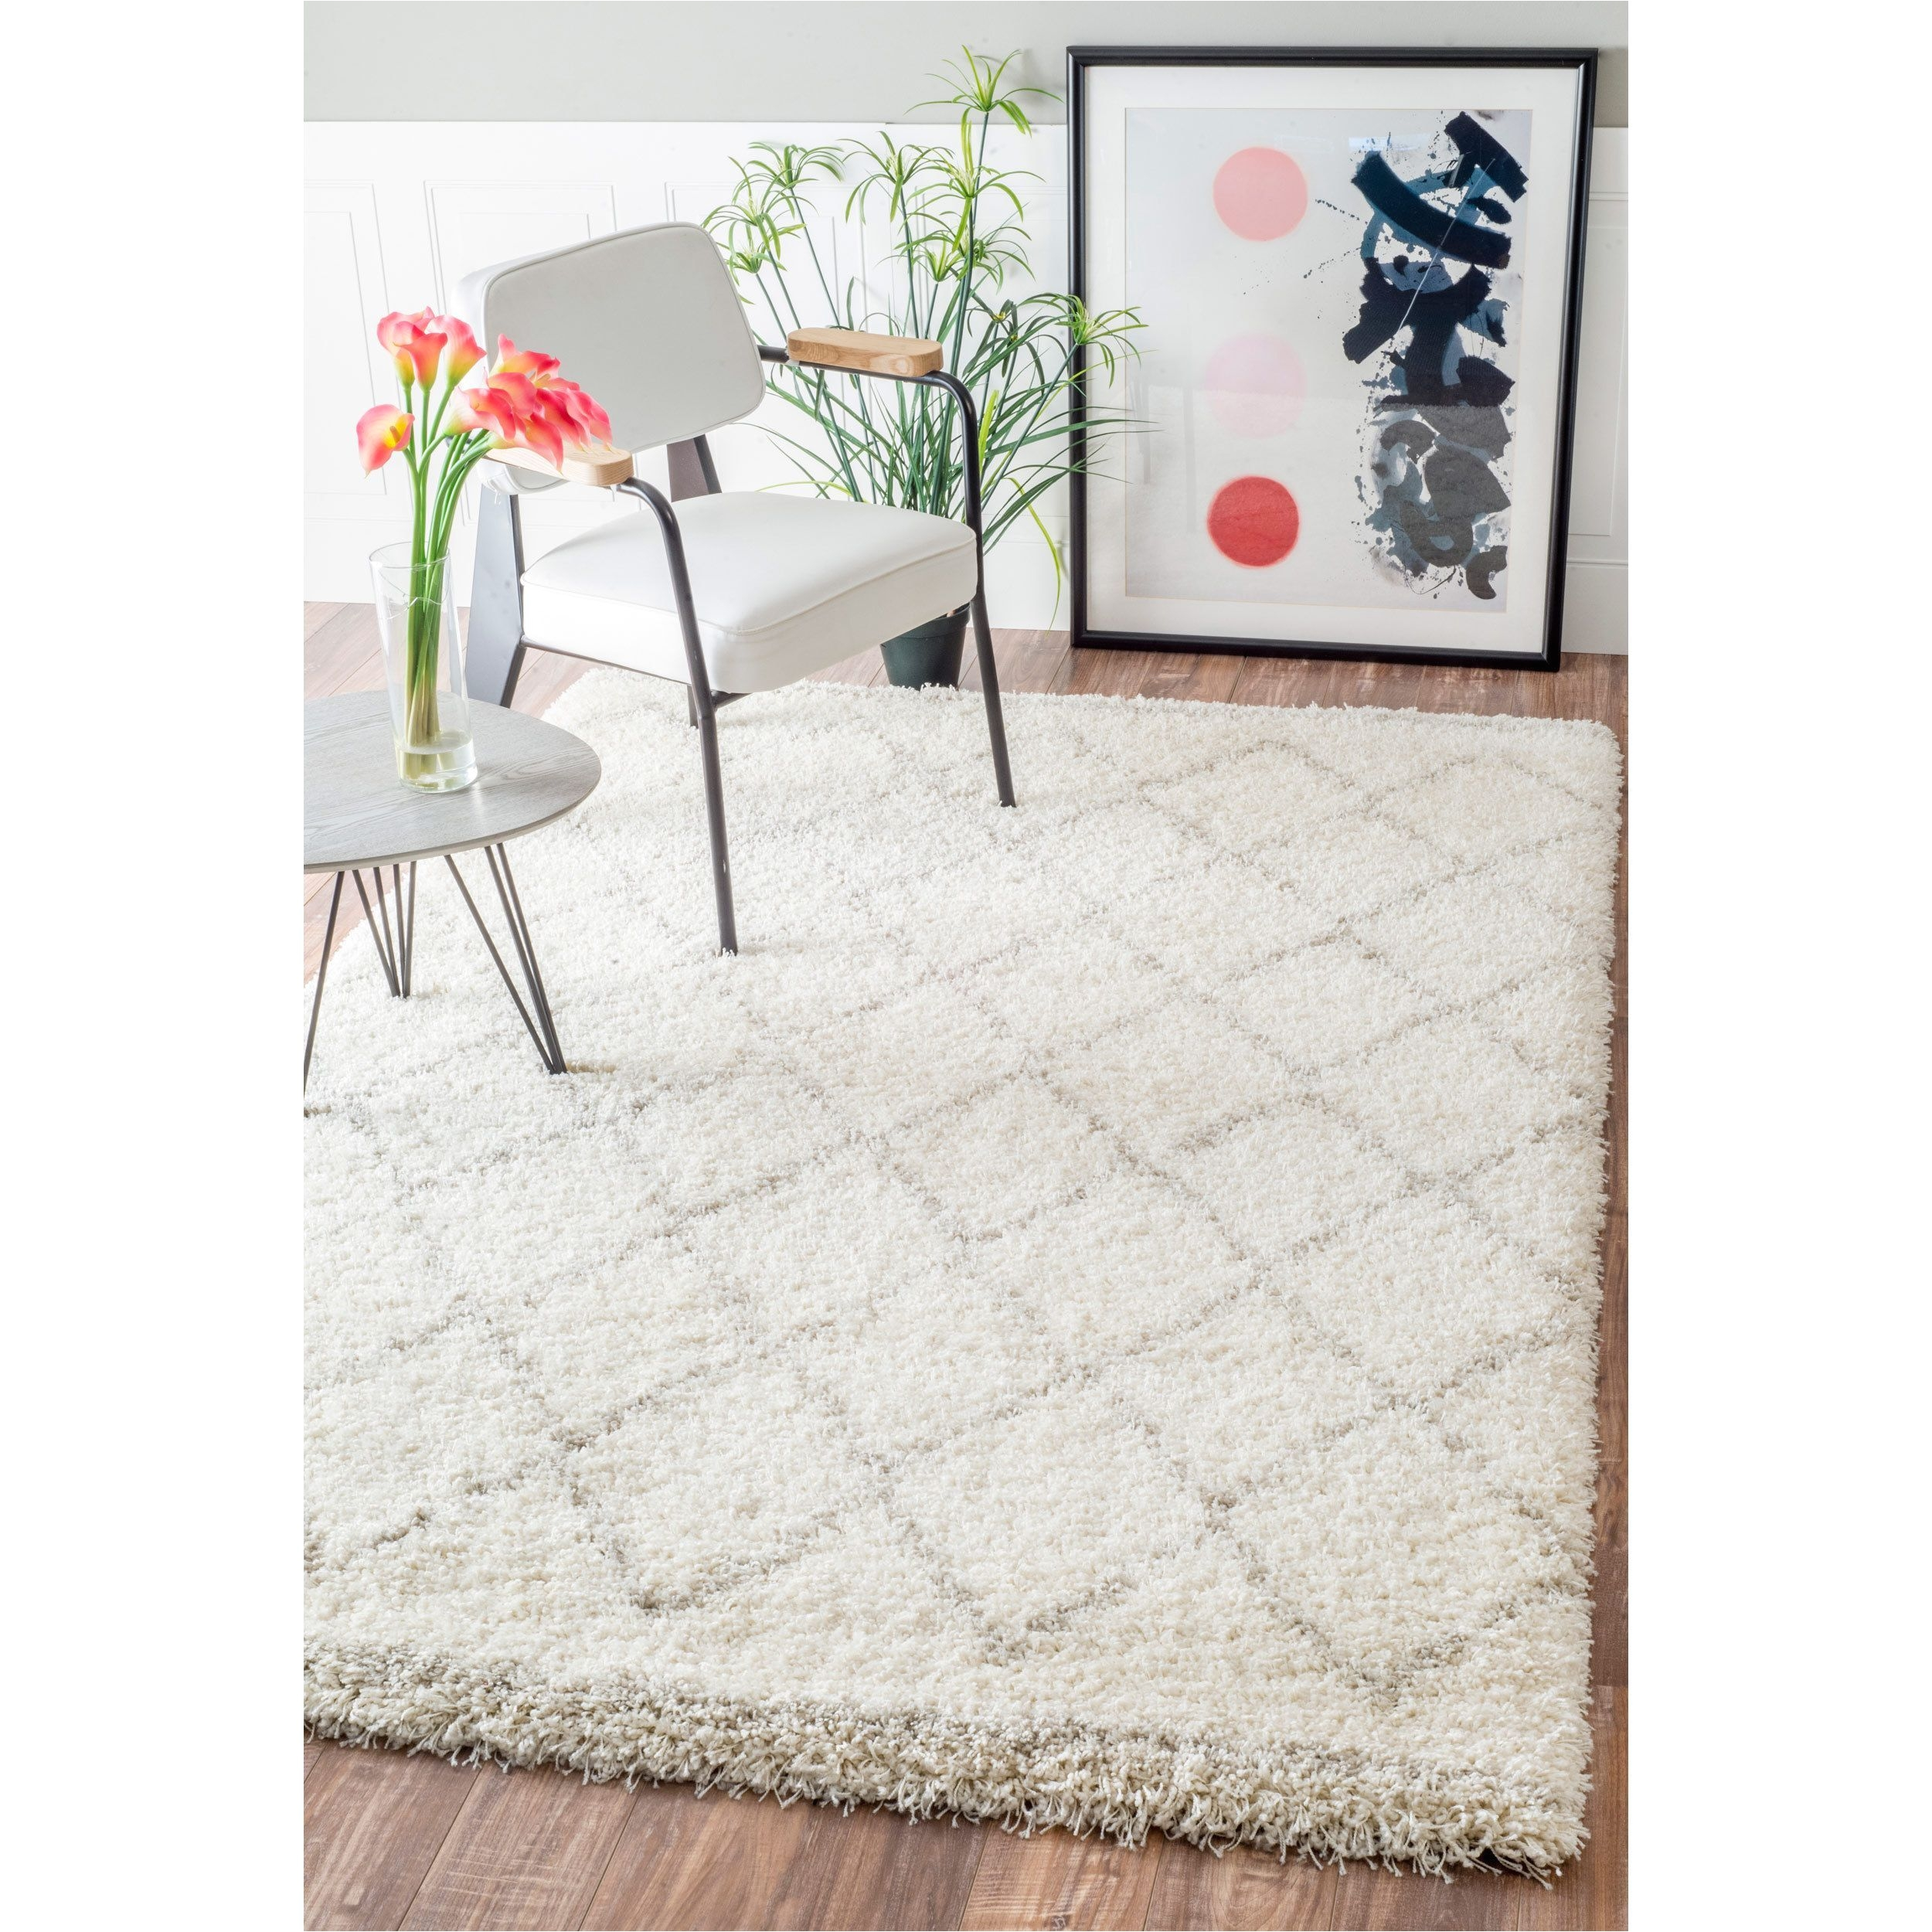 inspired by moroccan berber carpets this trellis shag rug adds depth to your decor made of polypropylene this soft and plush shag rug feels great under